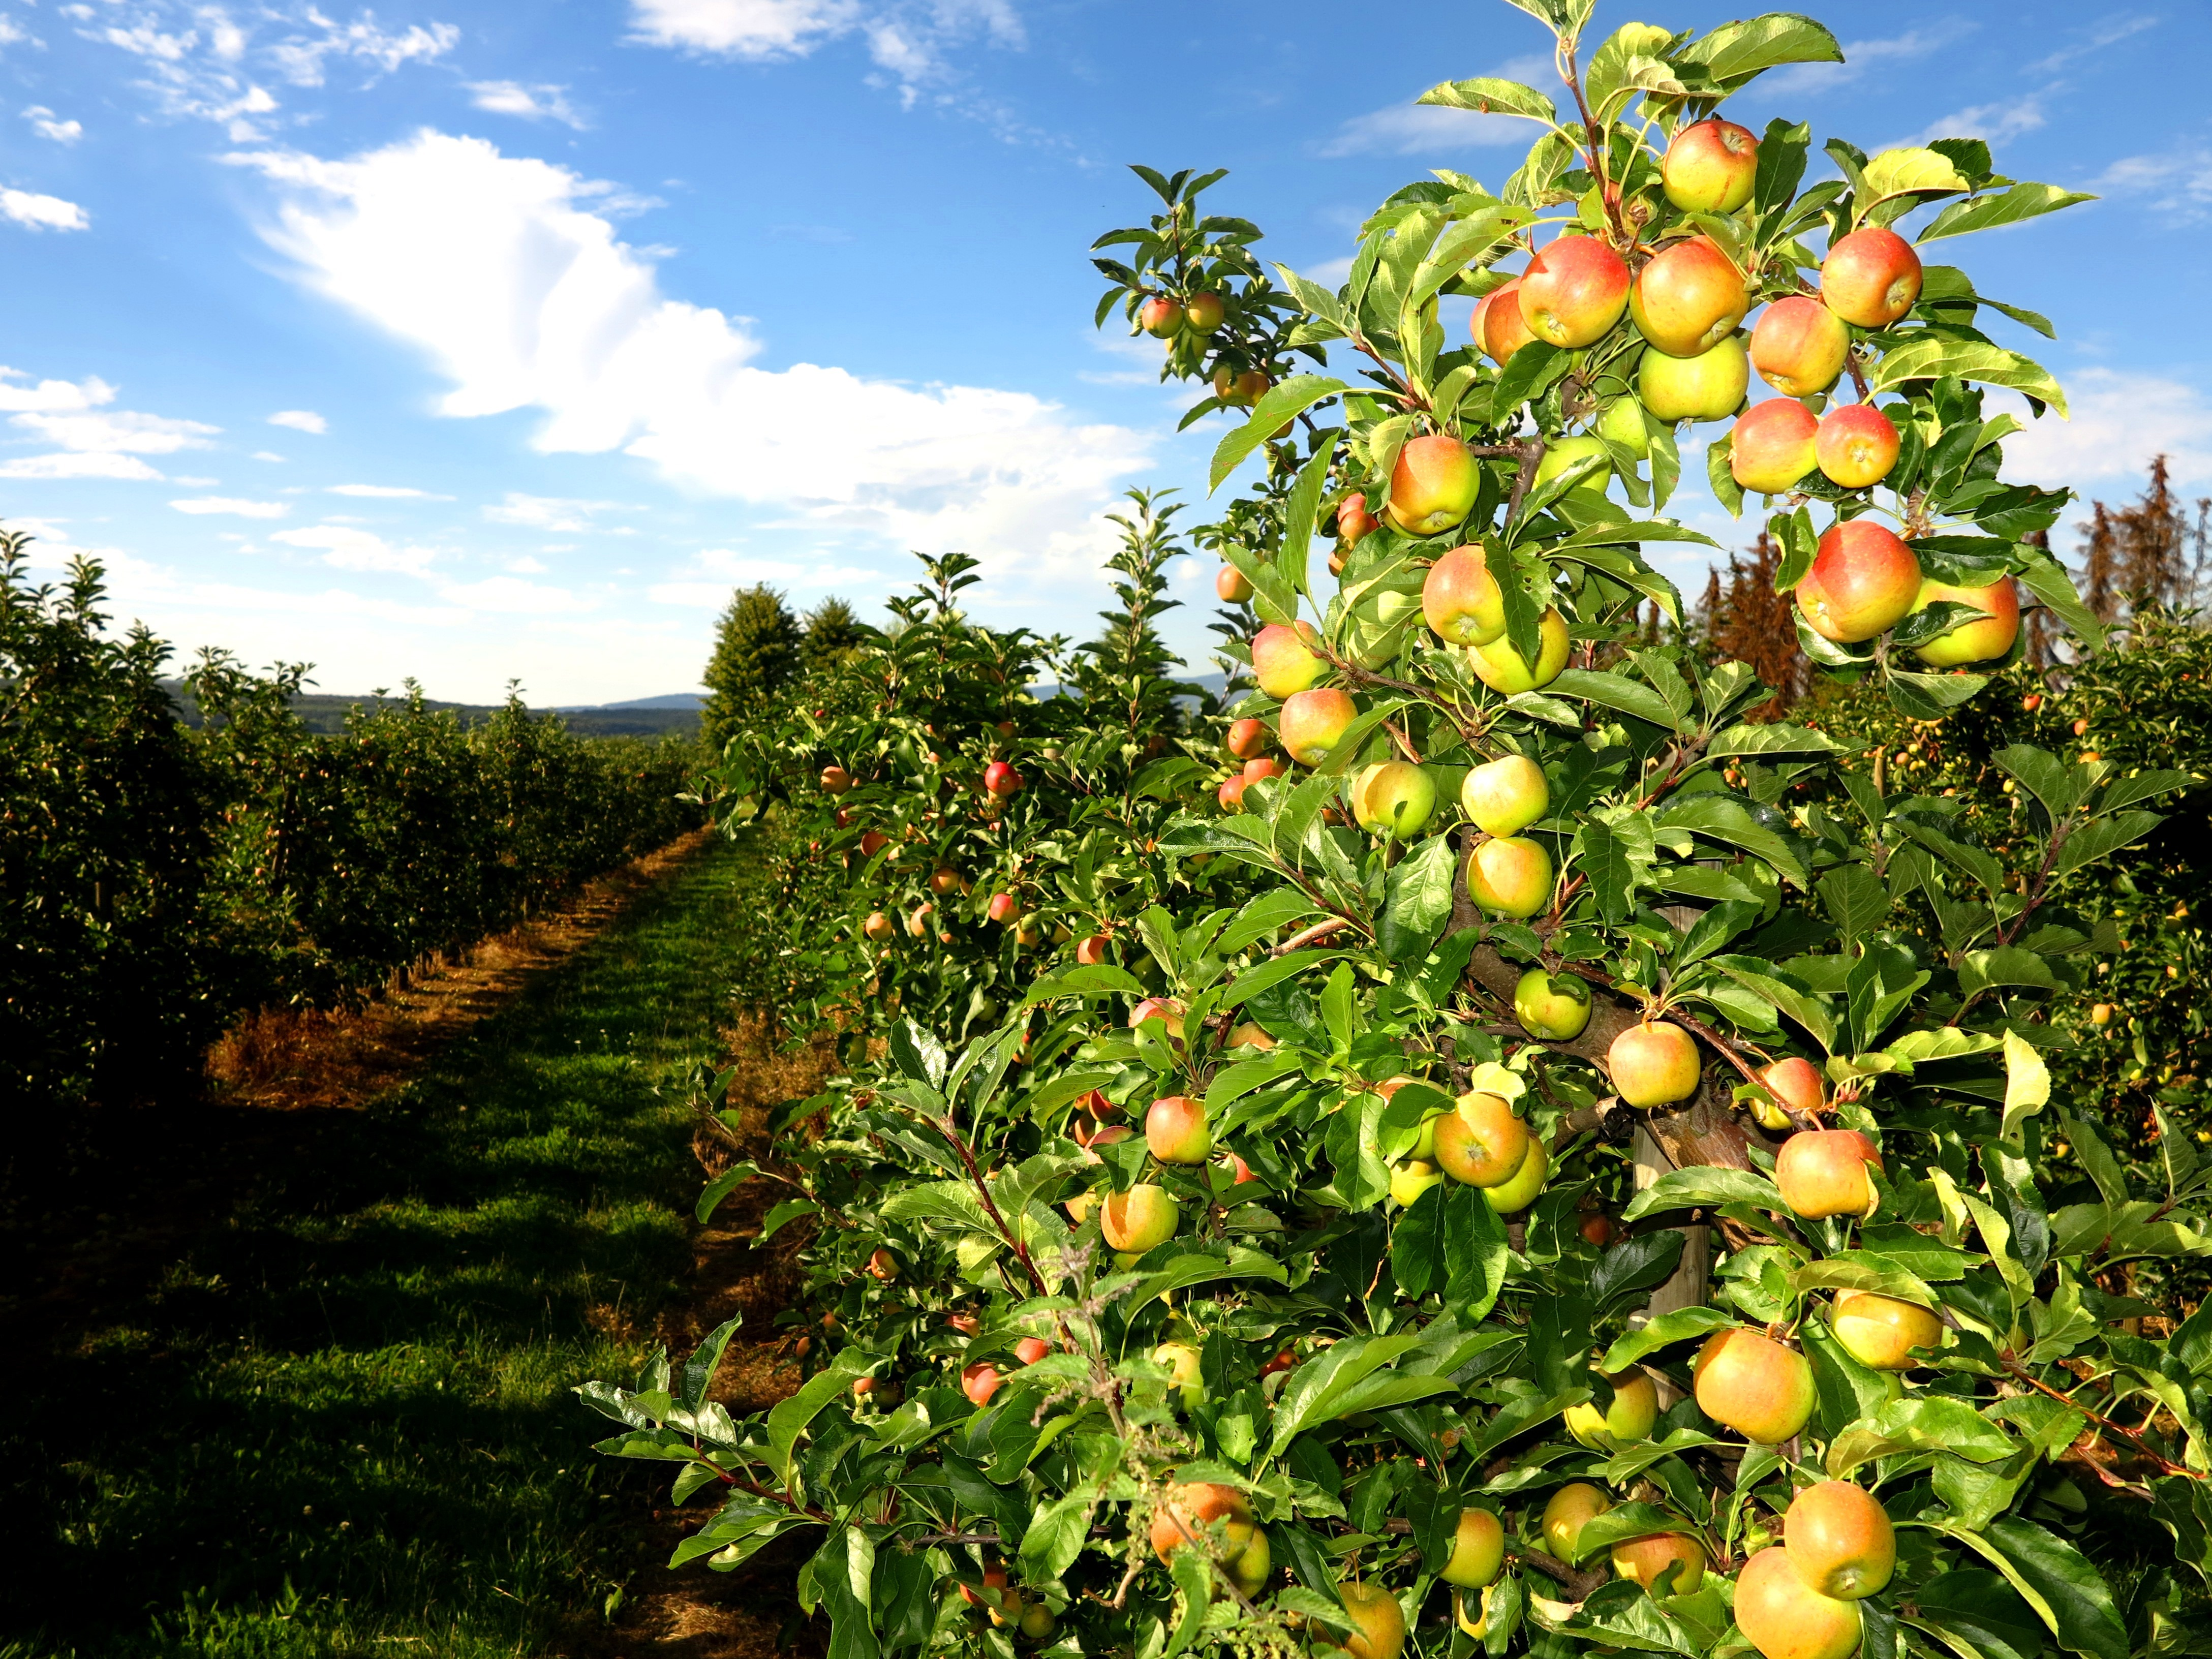 Endless apple orchards in Kriftel